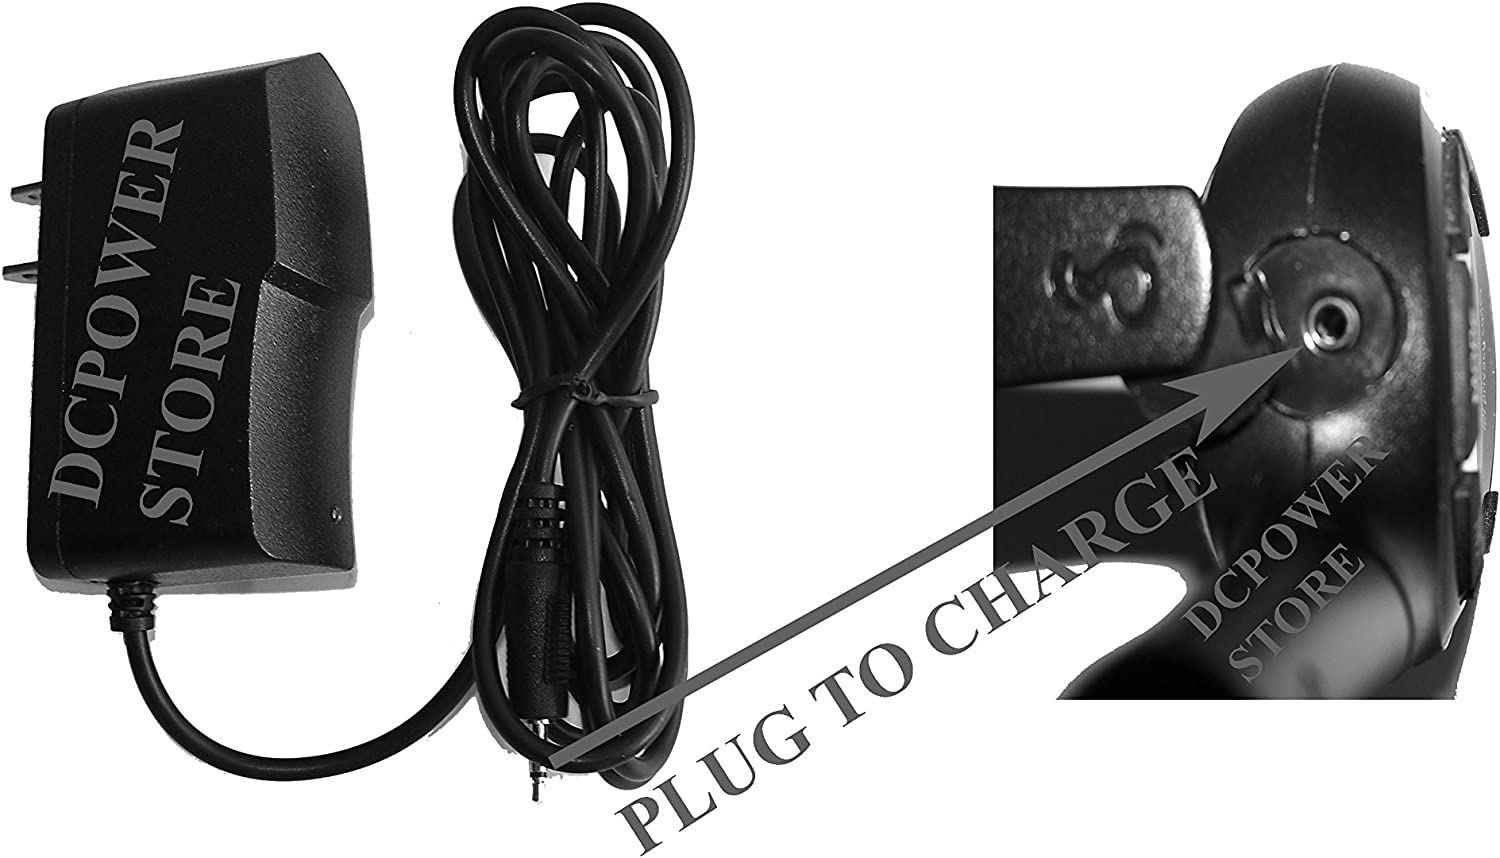 HOME WALL Charger Replacement for Cobra MicroTalk LI6050WX LI6050-2WXEVP 2-Way Radio